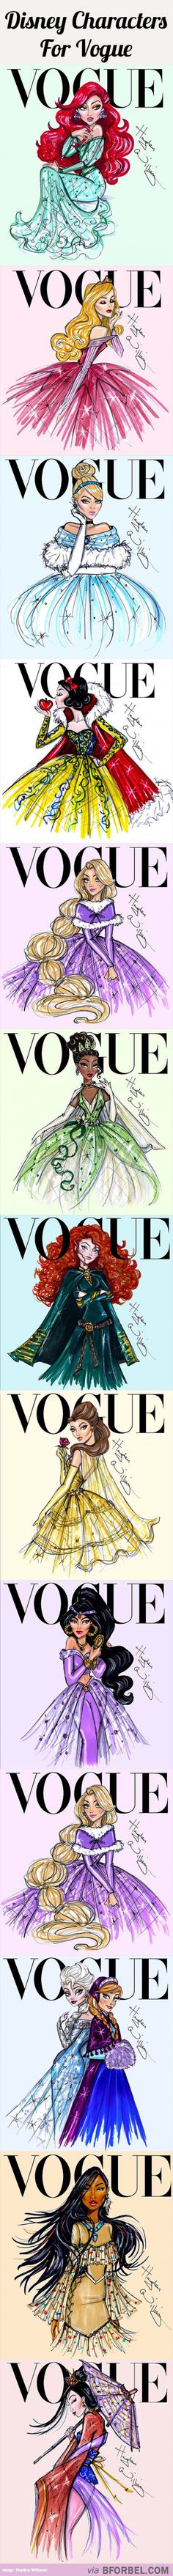 Princesas na capa da vogue